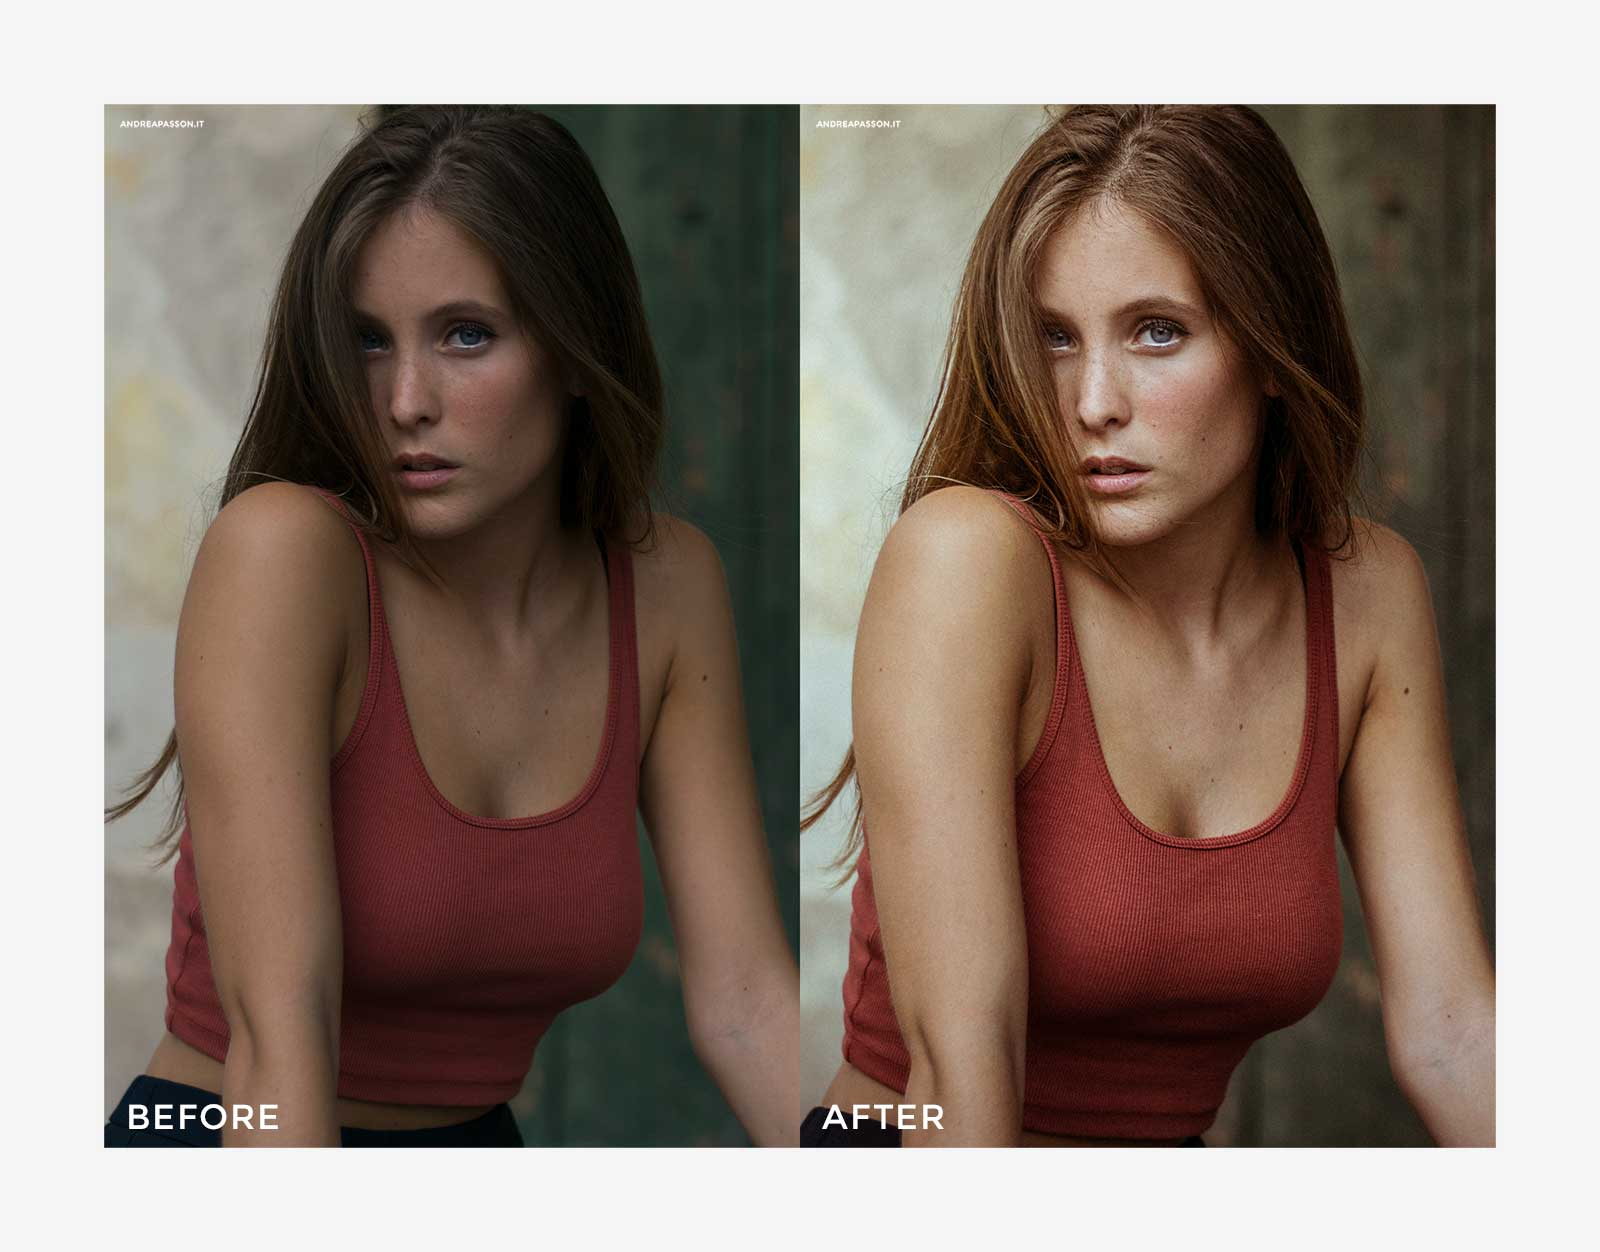 Before & After - Post Produzione Fotografica Professionale a Treviso - Glamour Photography